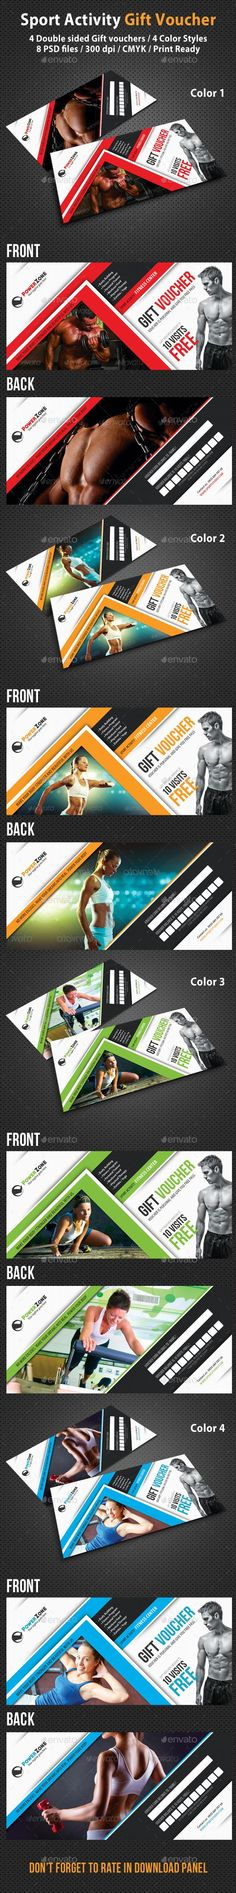 Sport Activity Gift Voucher 02 #template #cards #print #invites